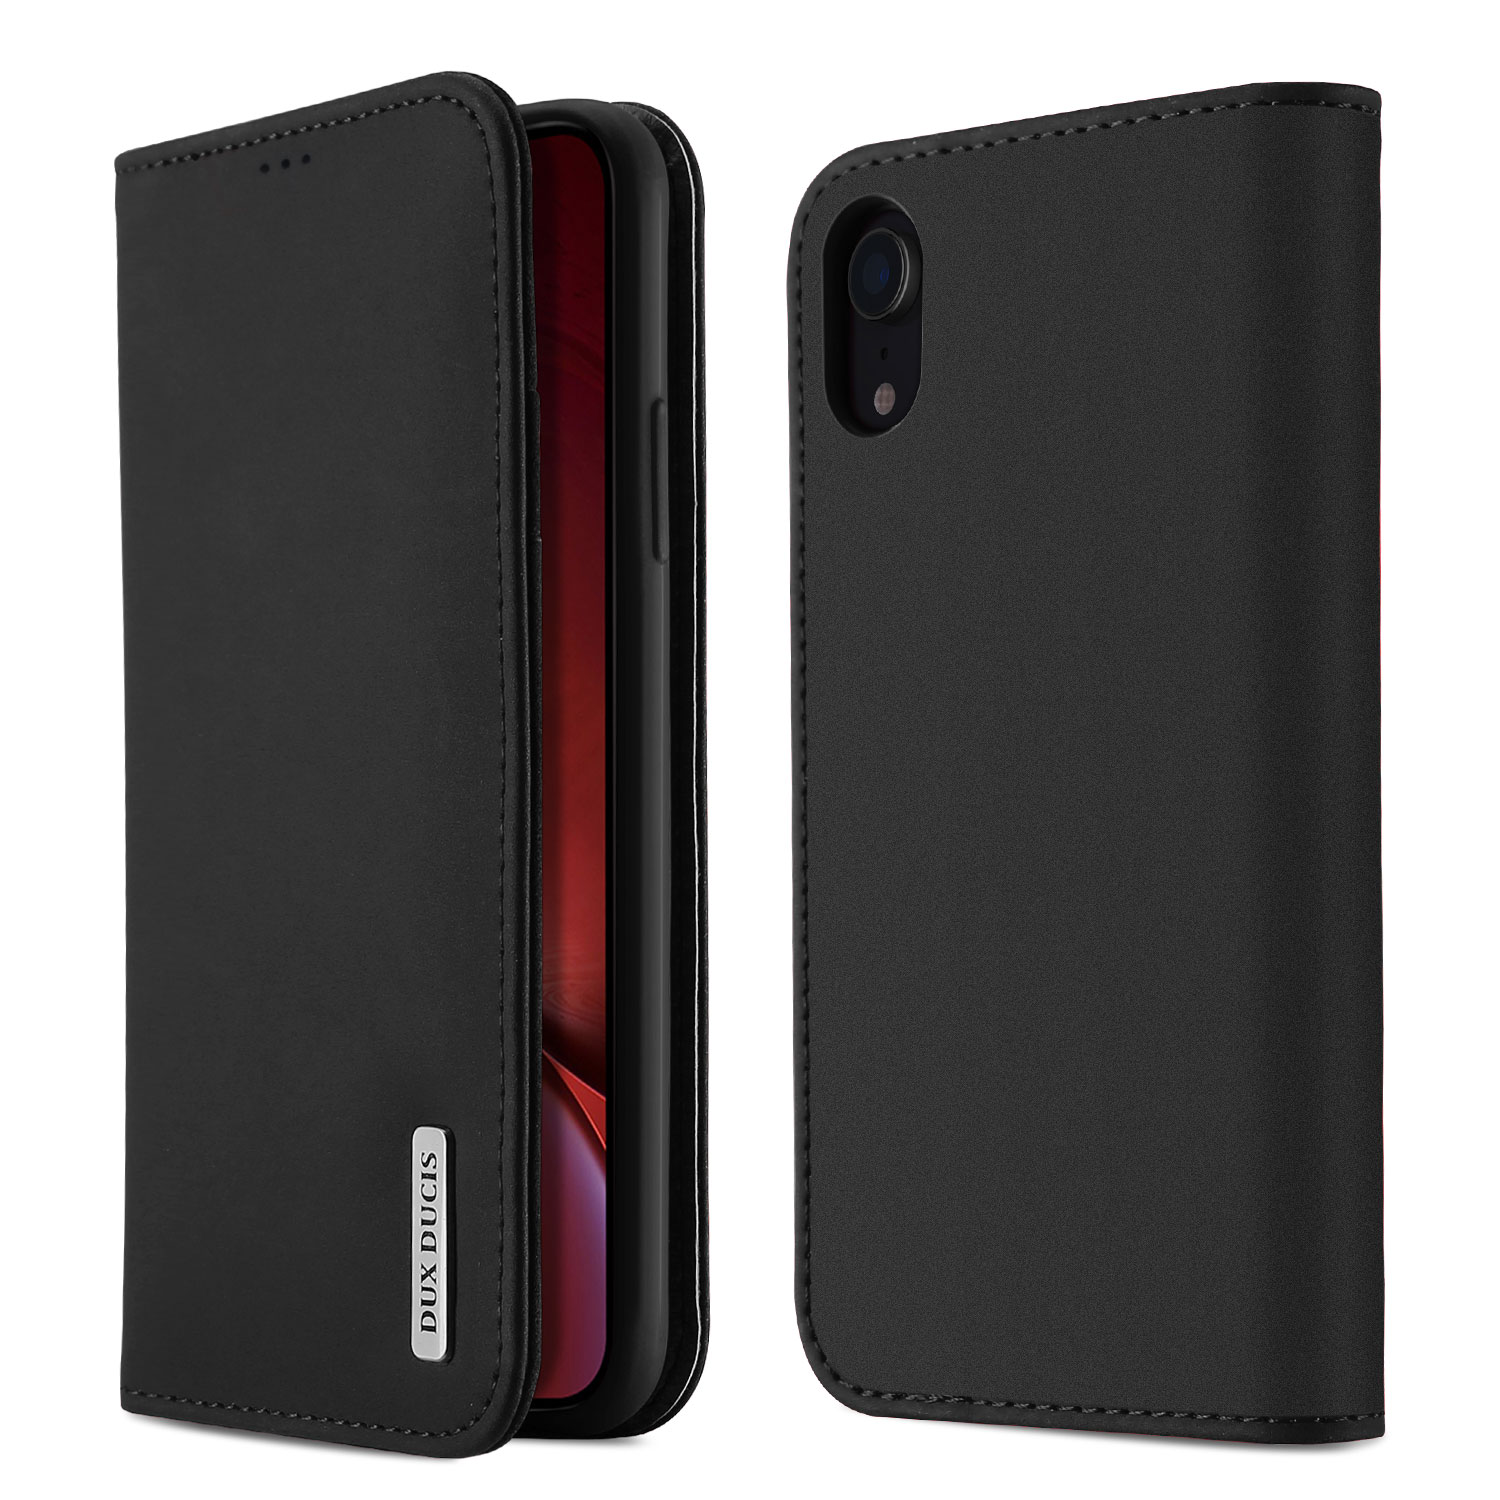 DUX DUCIS Luxury Genuine Leather Wallet Case For Iphone X XS Max XR 6S 7 8 Plus 11 Pro 11Pro Max Card Holder Comfortable Cover